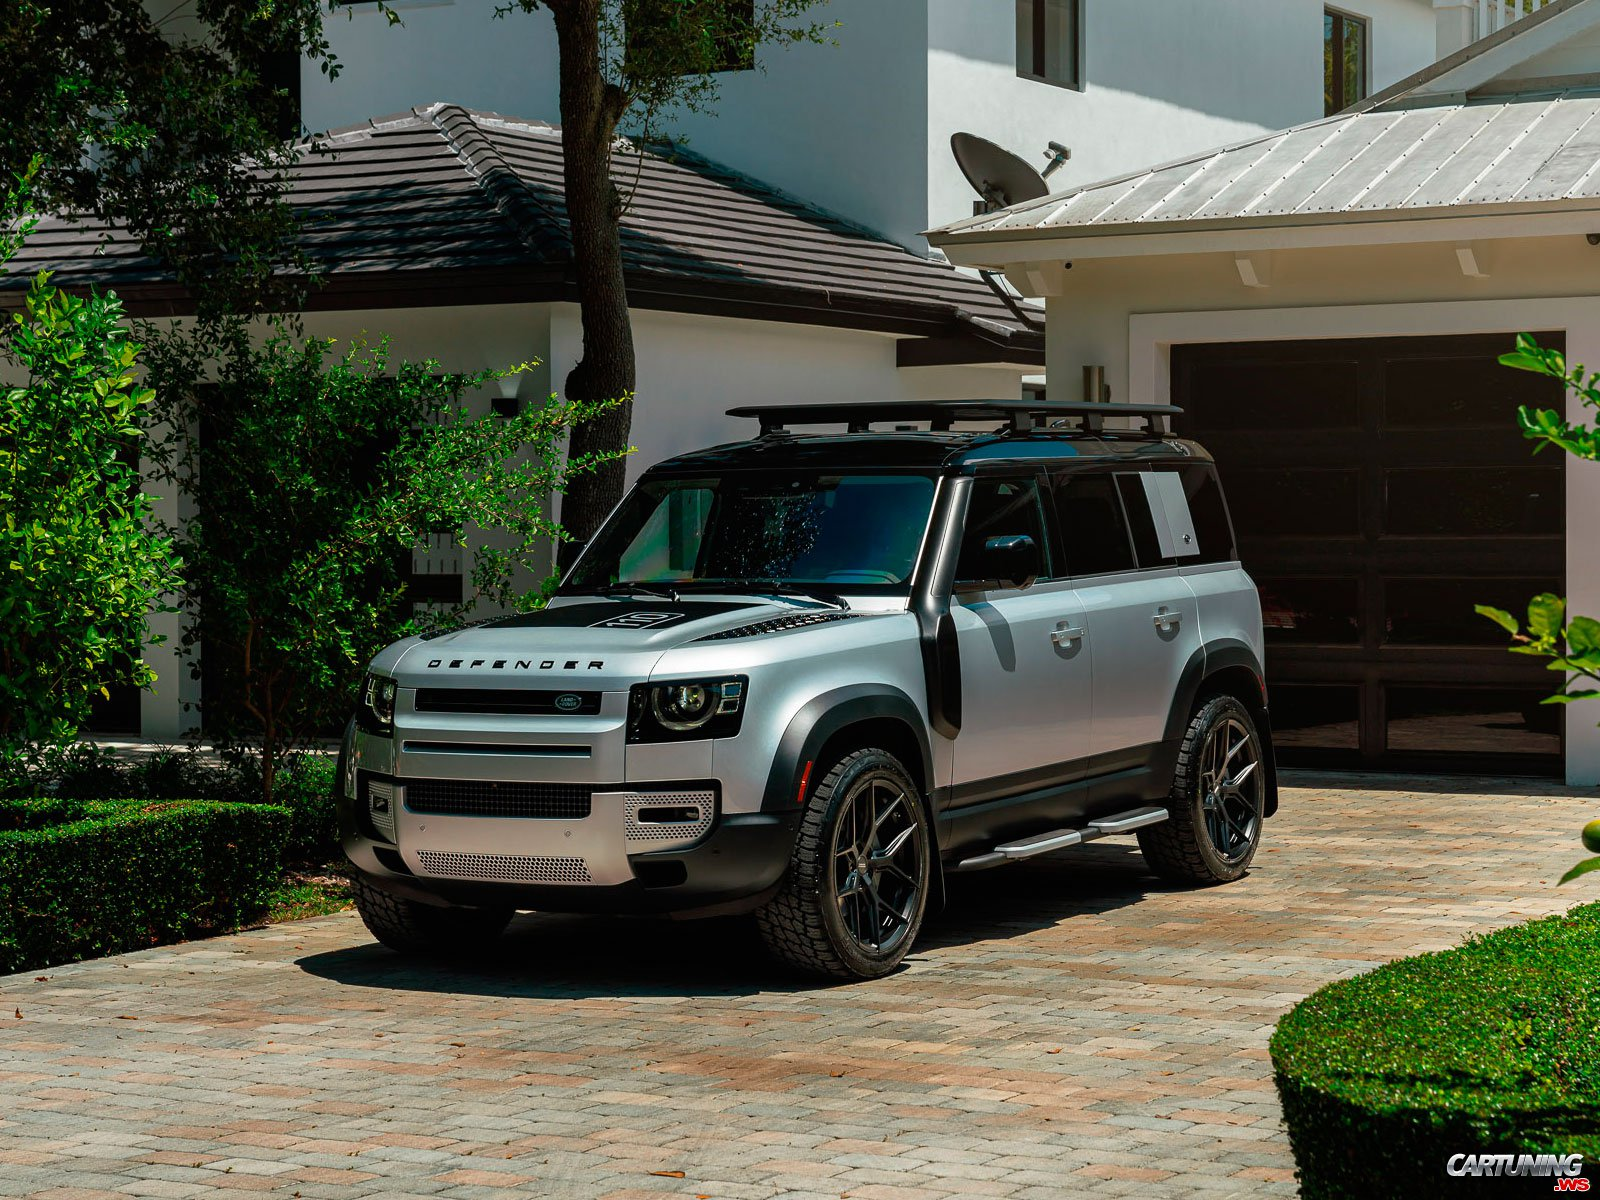 Tuning Land Rover Defender 110 2021, front